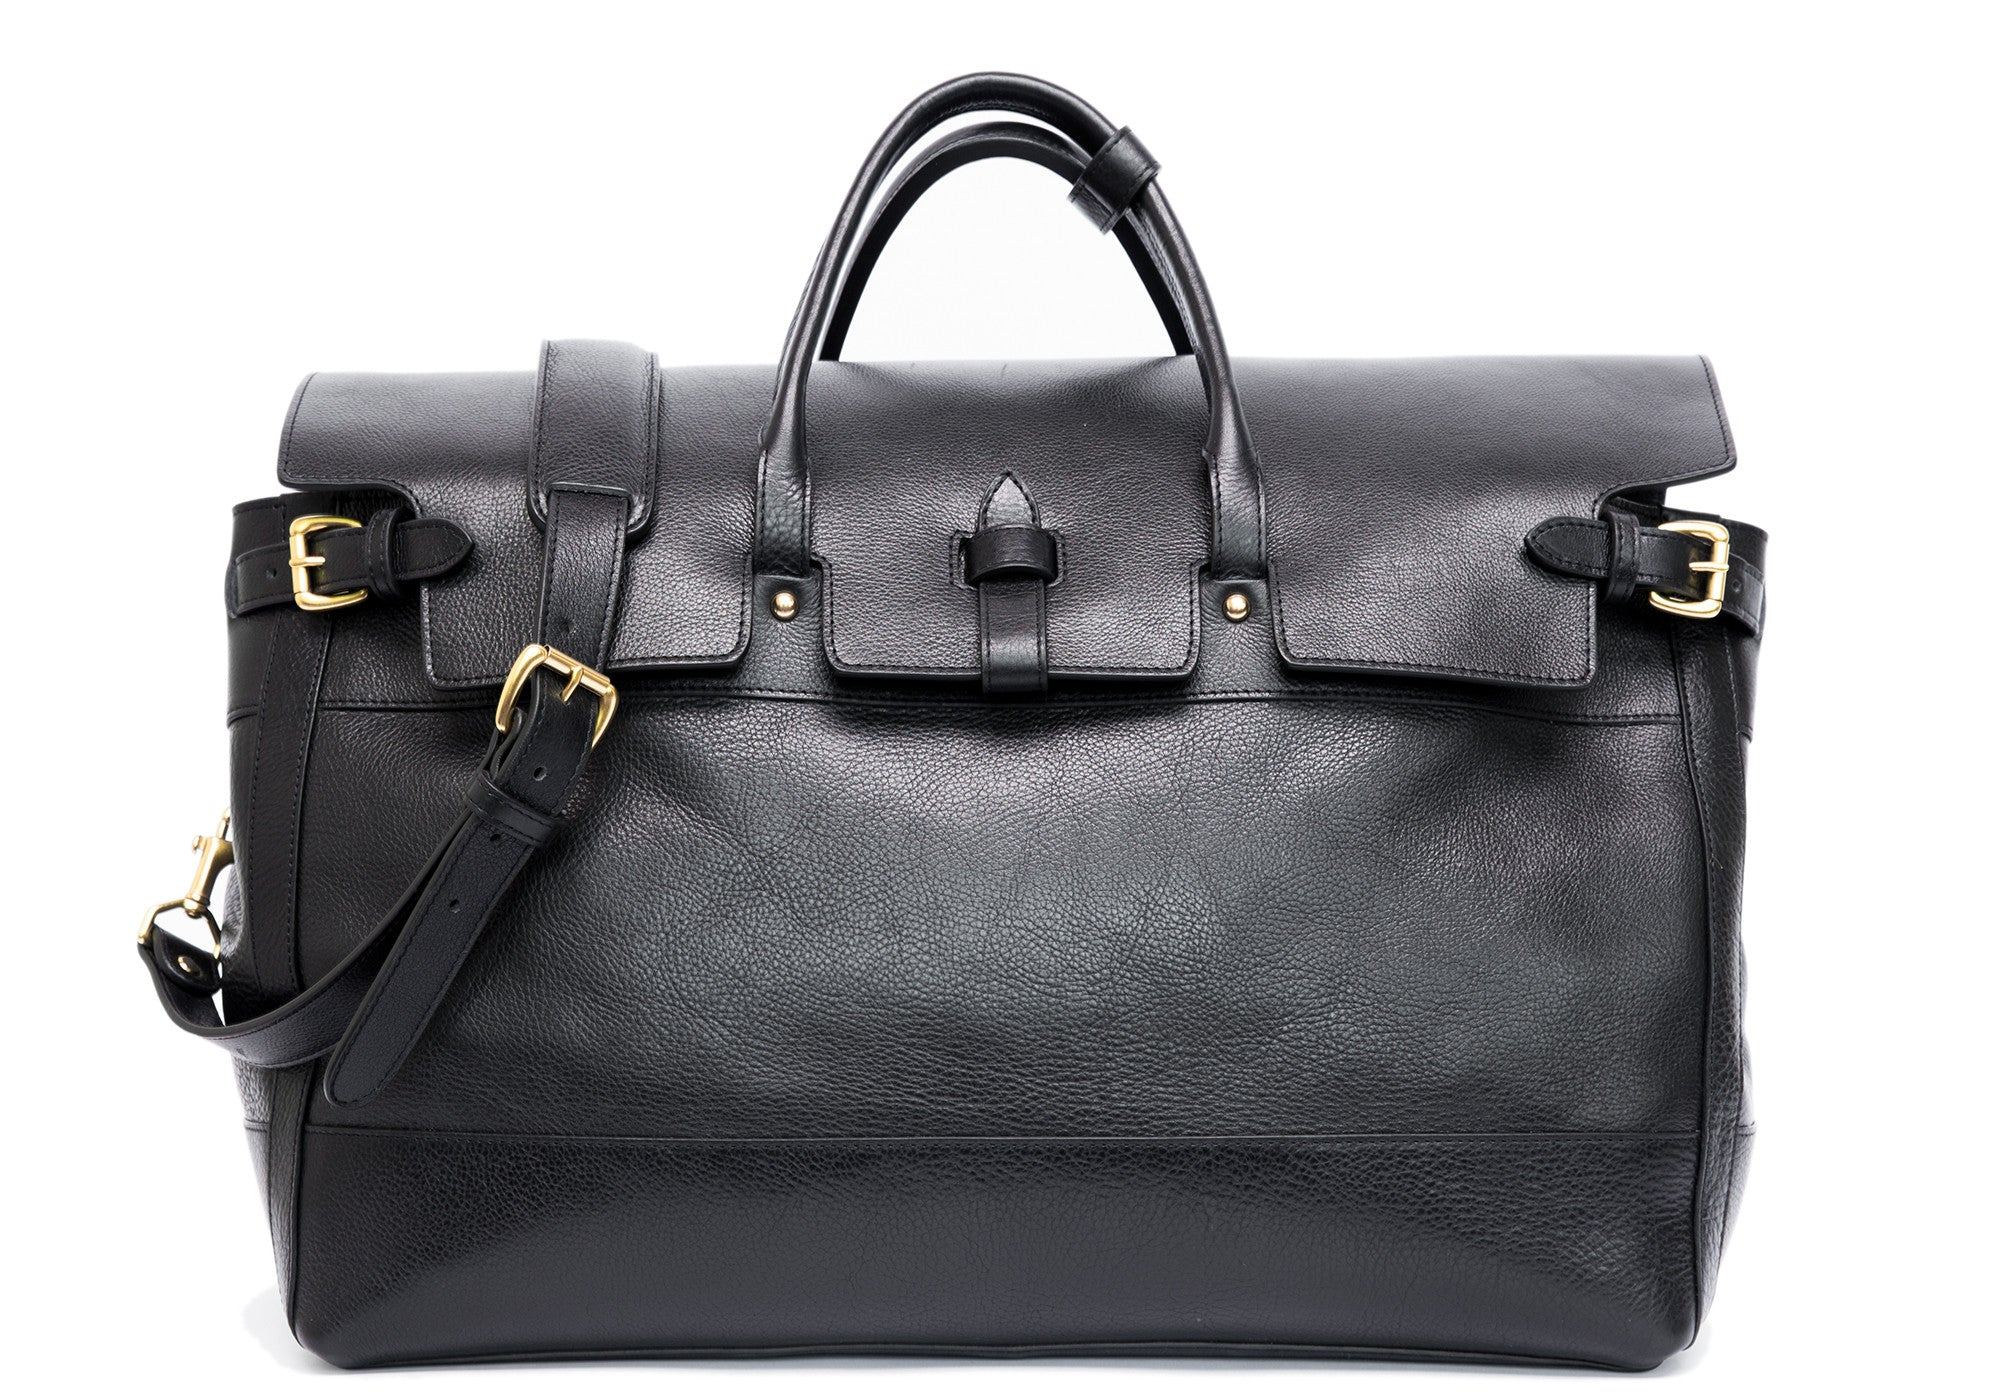 Leather Day Satchel Black|Front Leather View